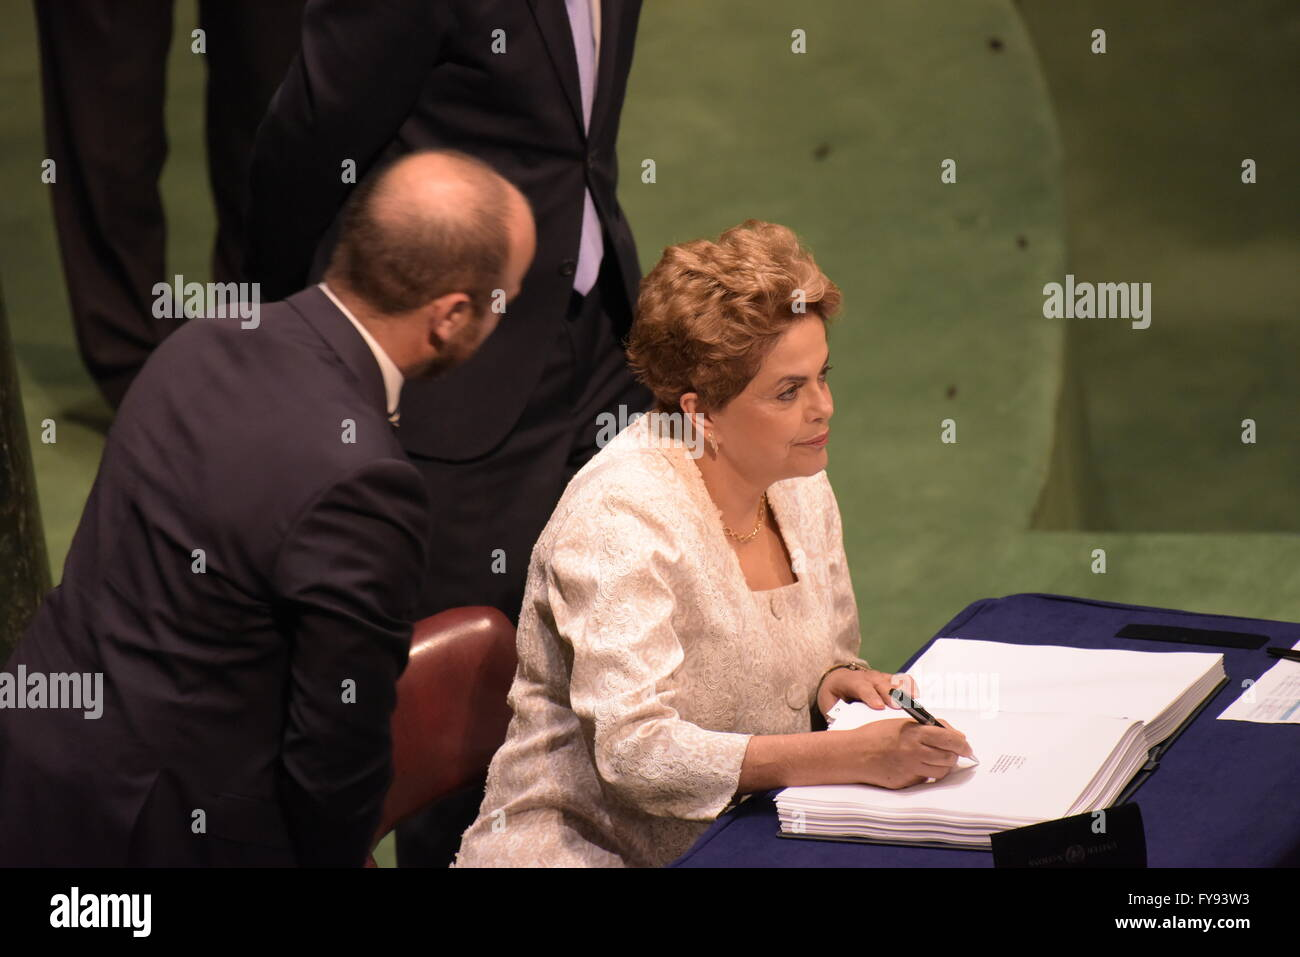 New York City, United States. 22nd Apr, 2016. Dilma Rousseff, president of Brazil, signs Paris Climate Accord. The - Stock Image